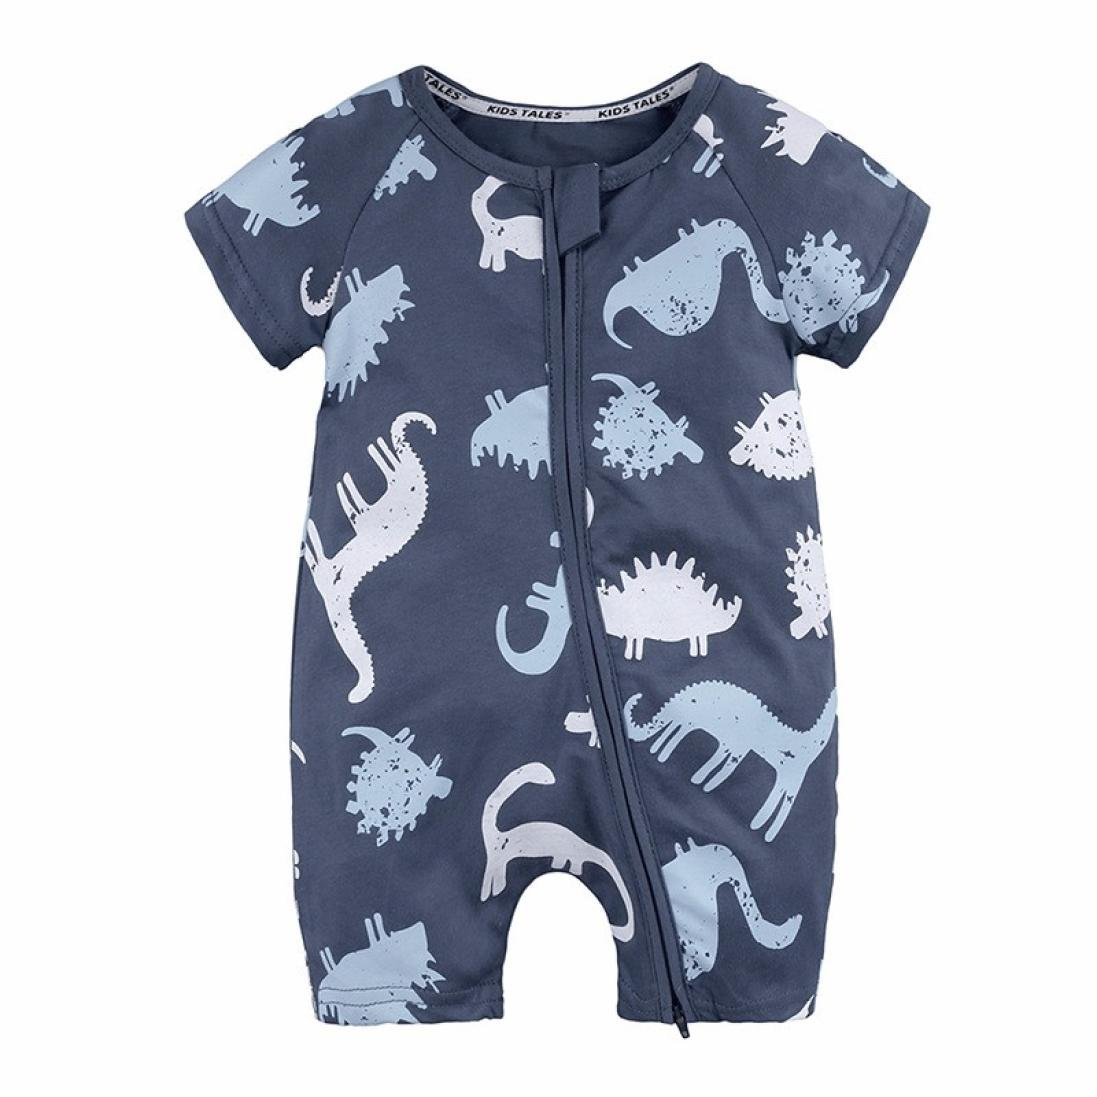 Boys Rompers, SHOBDW Baby Kids Girls Dinosaur Printed Zipper Short Sleeve Jumpsuit Toddler Newborn Summer Outfits Clothes Pajamas Gifts SHOBDW-030